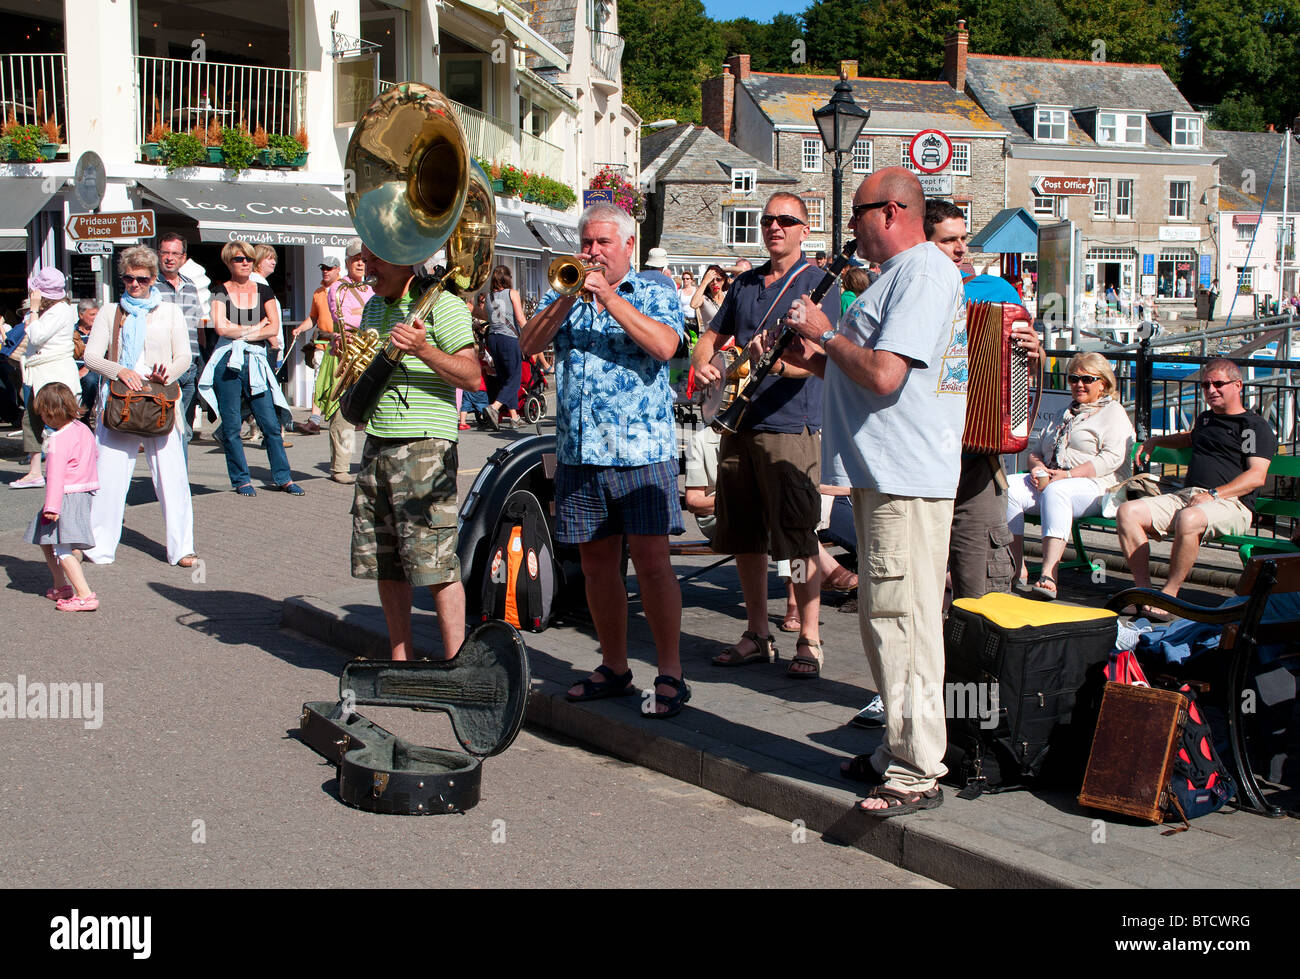 Buskers on the Harbour at Padstow in Cornwall, UK - Stock Image